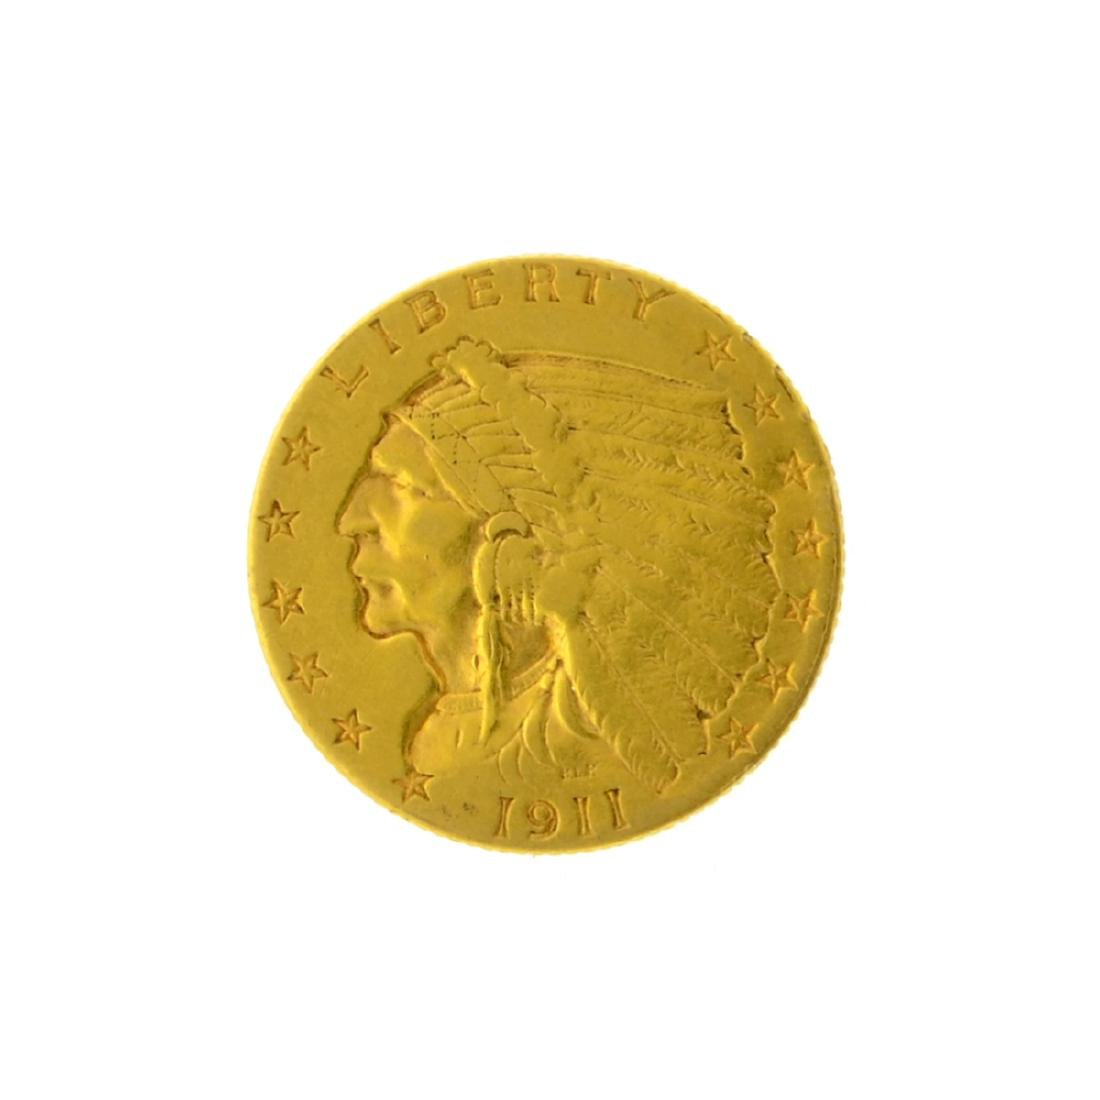 1911 $2.50 Indian Head Gold Coin